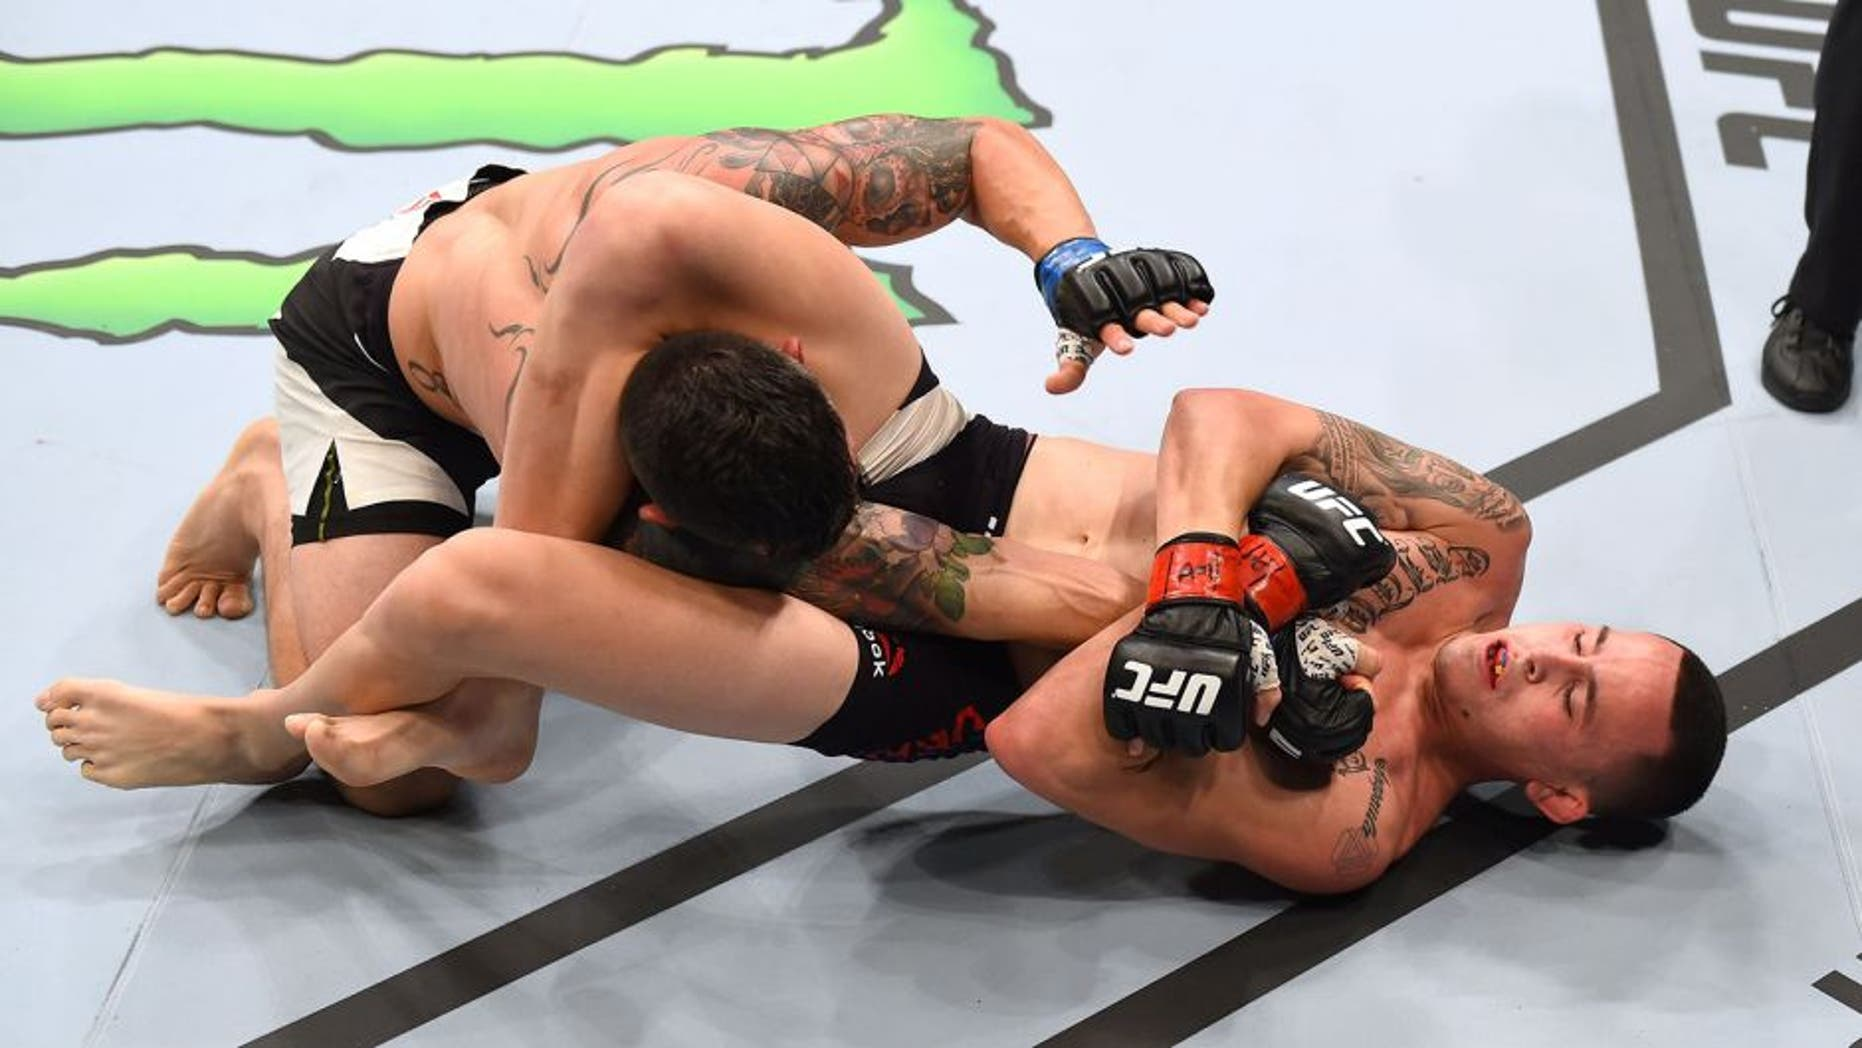 NASHVILLE, TN - AUGUST 08: (R-L) Marlon Vera of Ecuador attempts a submission against Roman Salazar in their bantamweight bout during the UFC Fight Night event at Bridgestone Arena on August 8, 2015 in Nashville, Tennessee. (Photo by Josh Hedges/Zuffa LLC/Zuffa LLC via Getty Images)